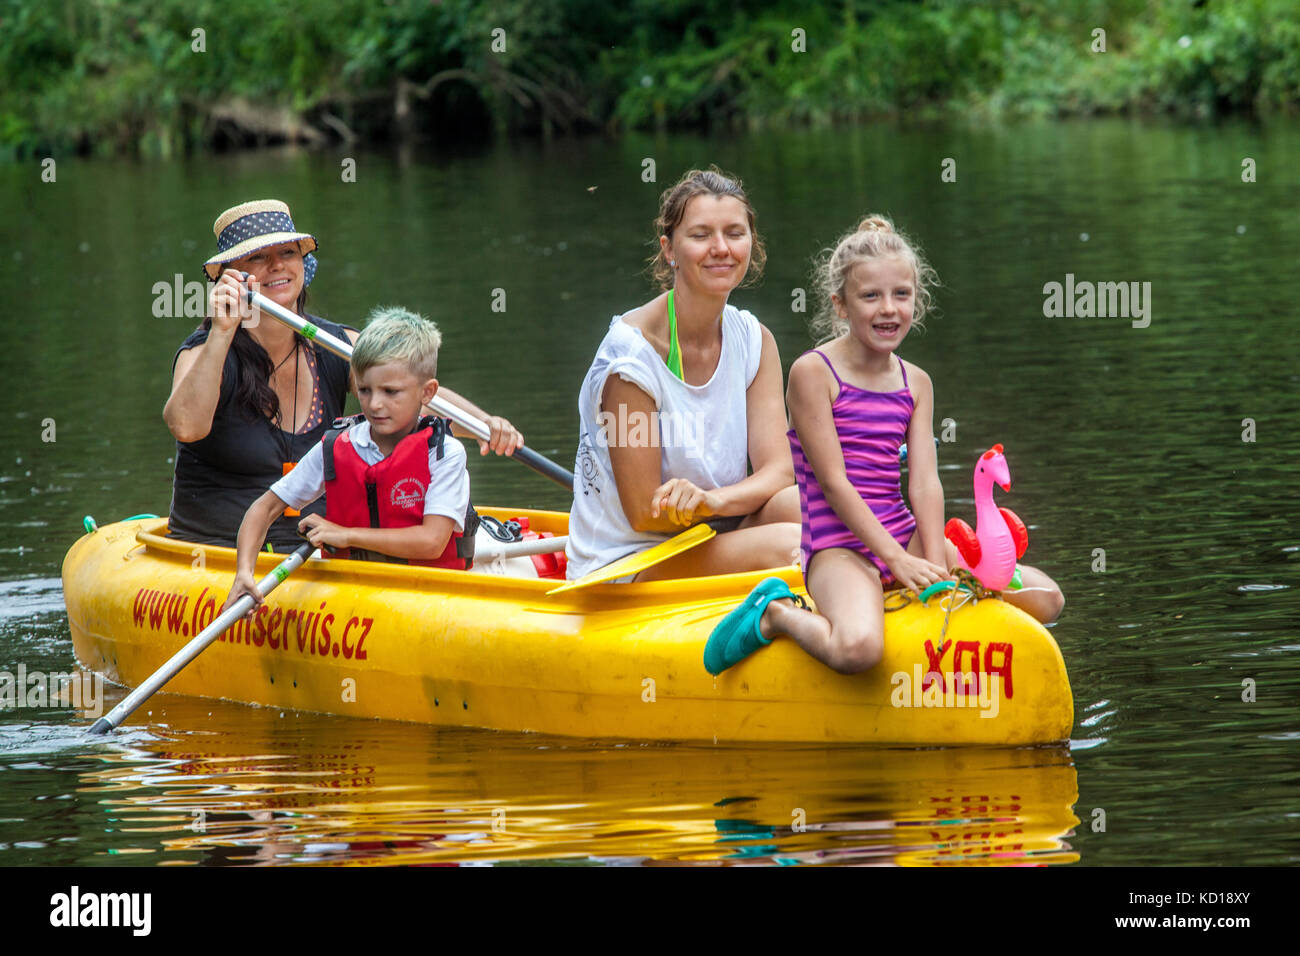 Canoeing family with three generation paddlers going down by  Otava river, People, Vacations in summer, Czech Republic - Stock Image